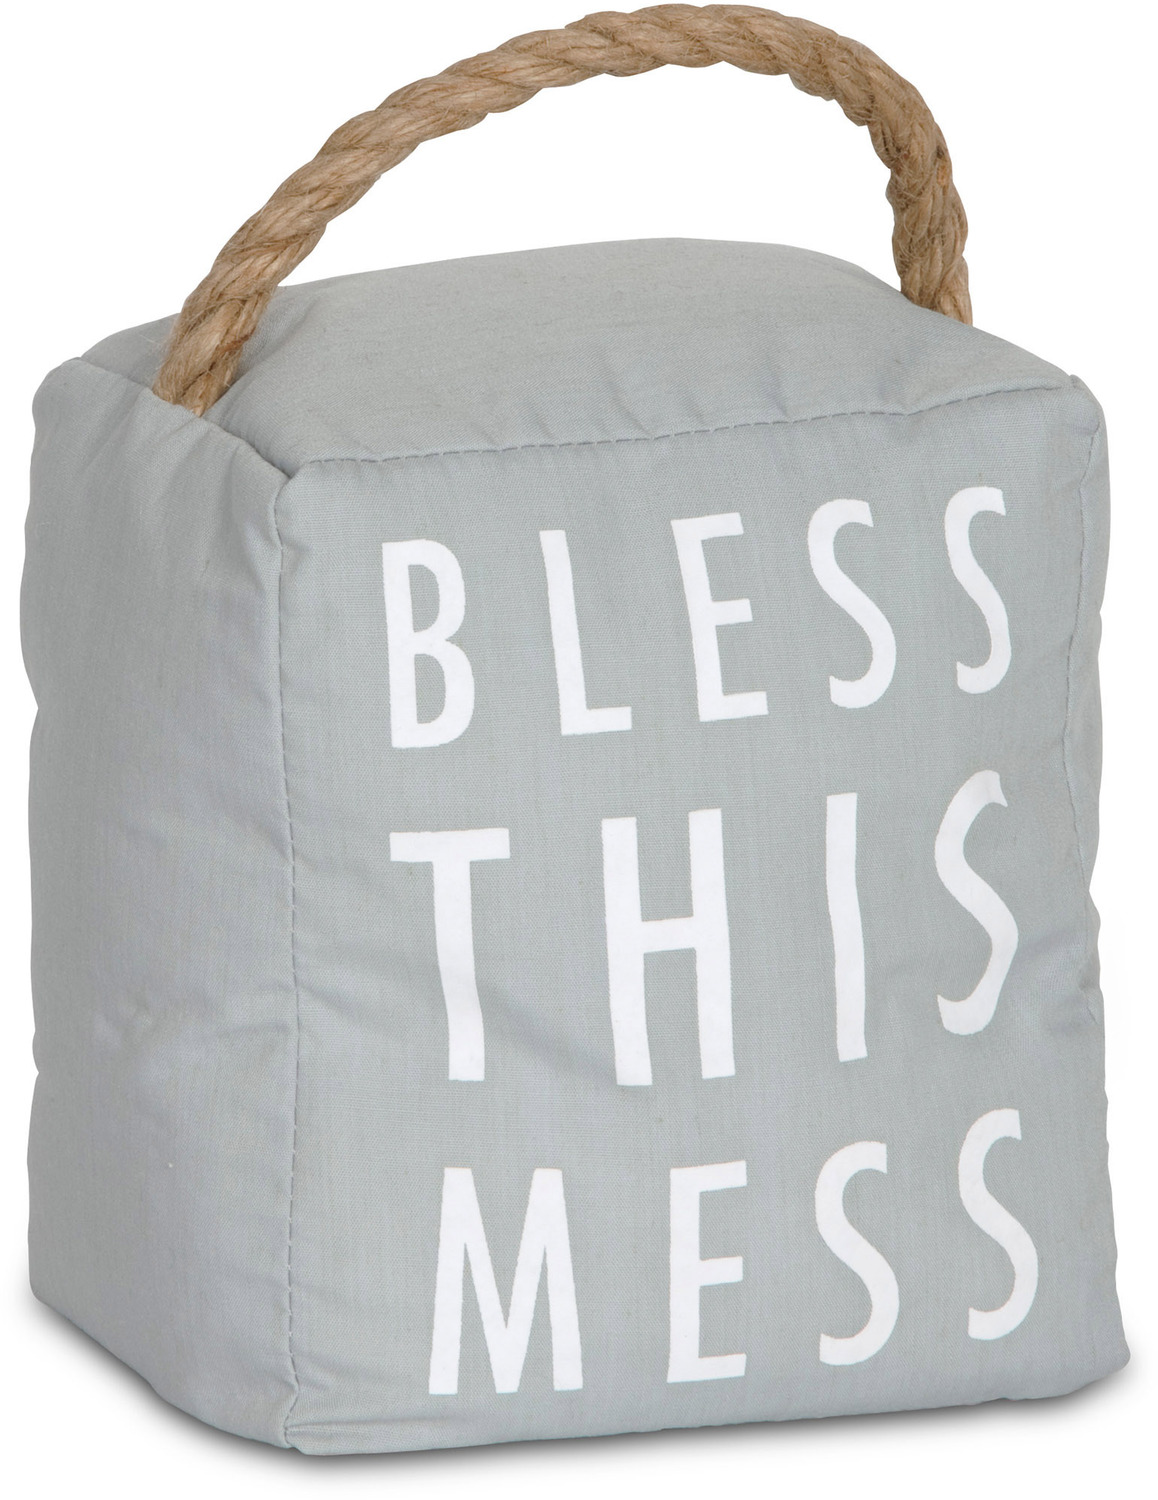 Bless this Mess by Open Door Decor - <em>Bless</em> - Simple & Functional Door Stopper -